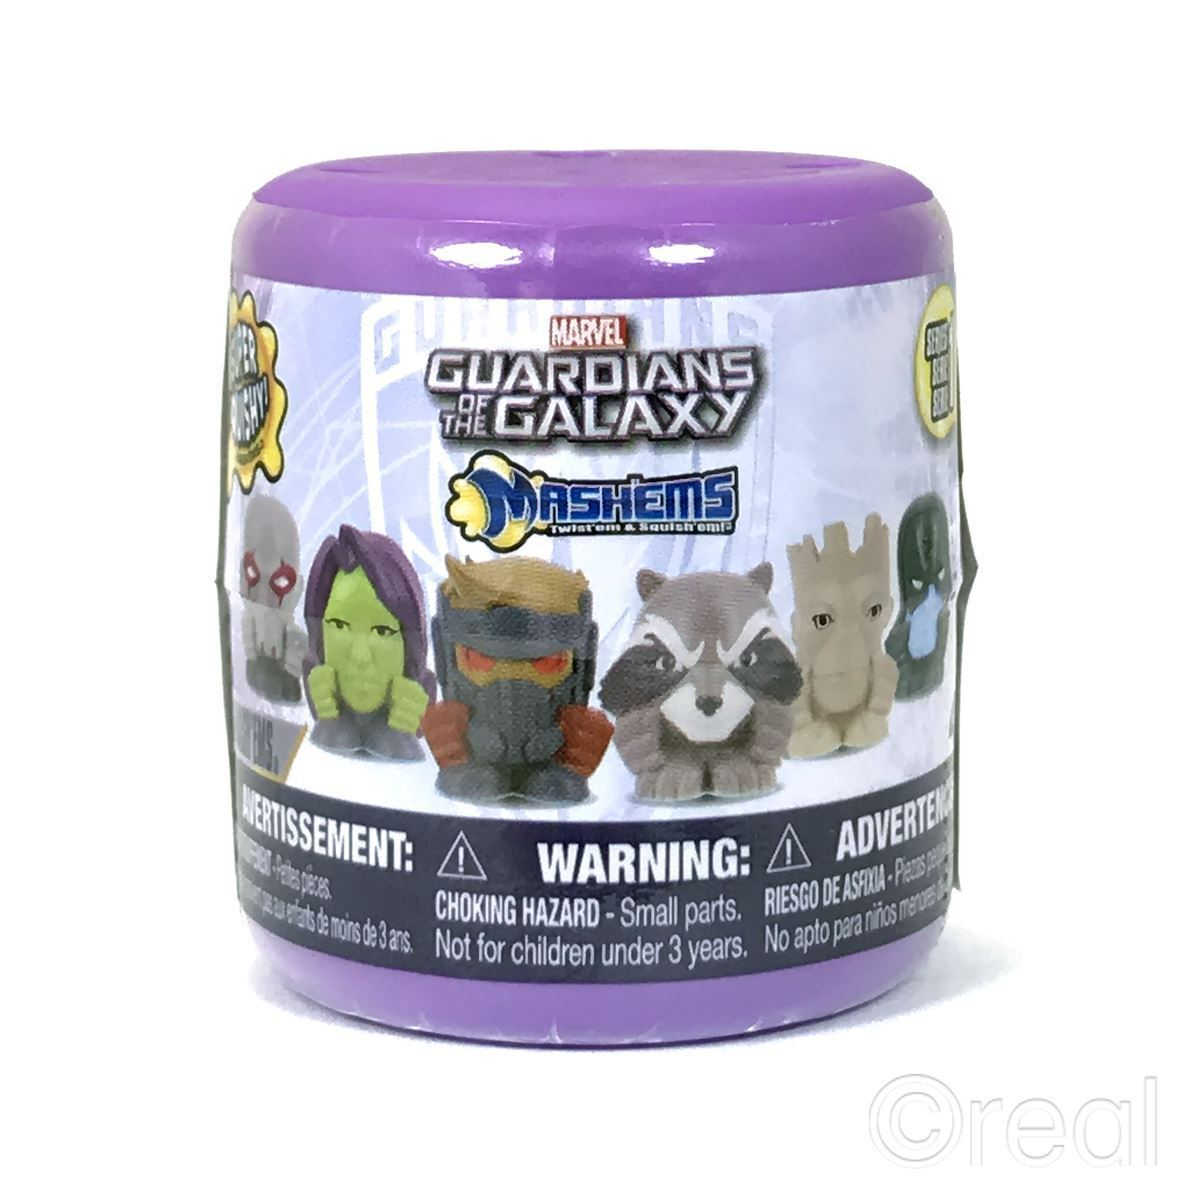 New 1 1 1 3 5 Or 10 Series 1 Guardians Of The Galaxy Mash'ems Blind Figure Official 0a4495